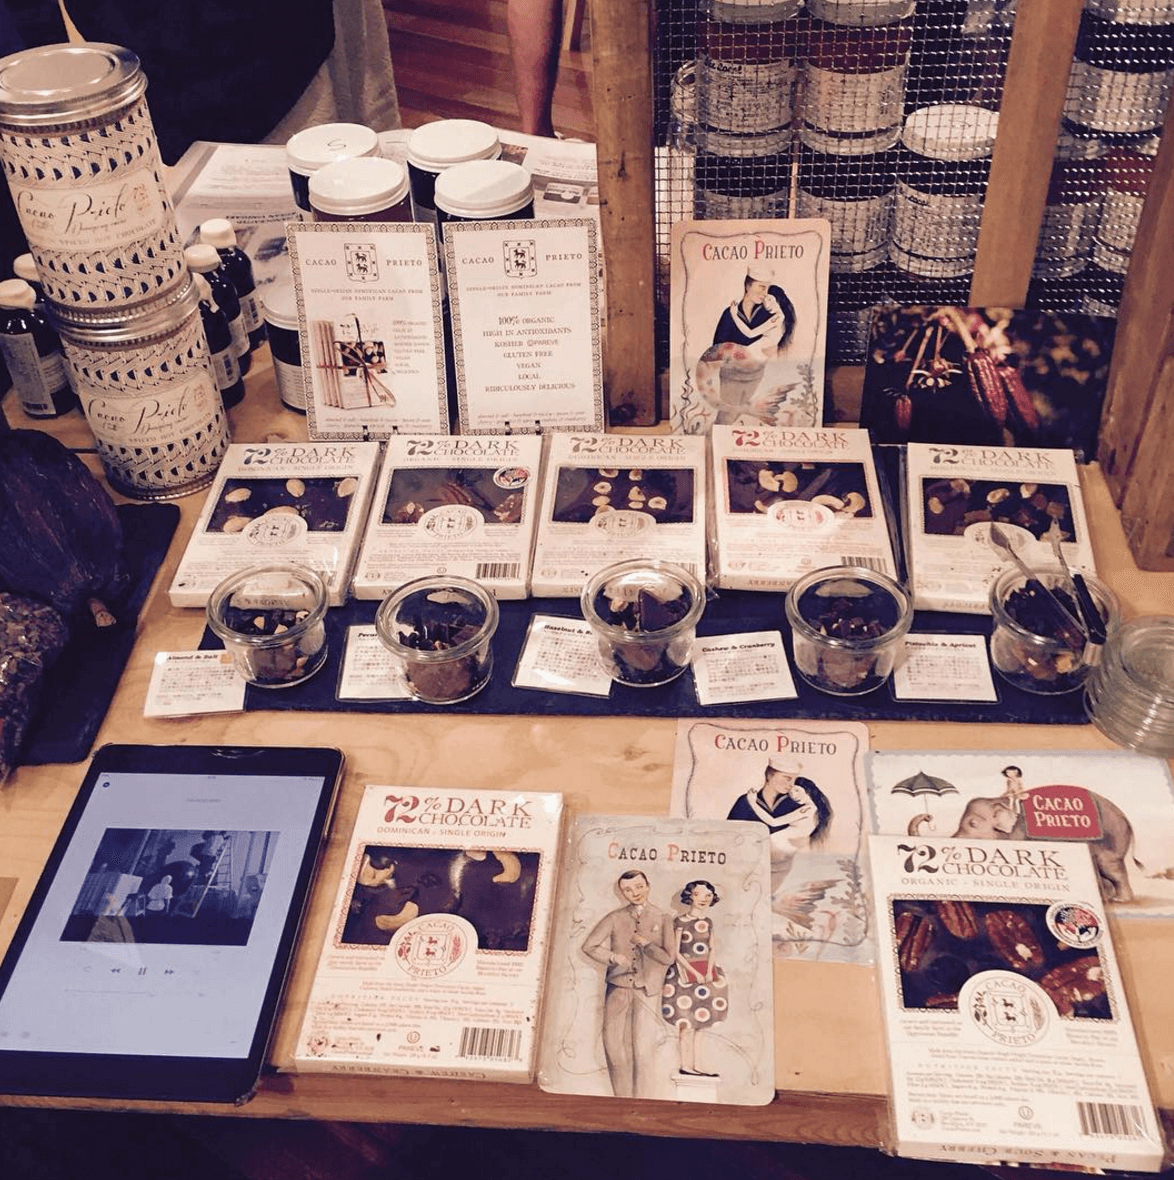 Shop Specialties Cacao Prieto Chocolate and Widow Jane Collection at EBIS OHTSU Gallery Japan